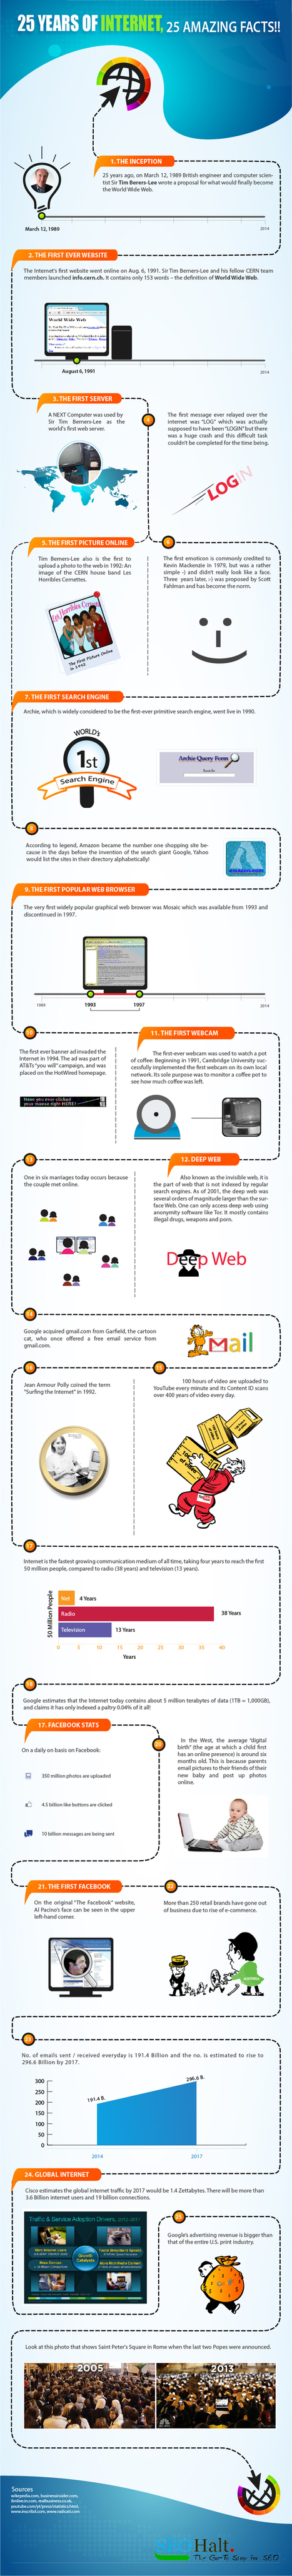 25 Amazing Facts about the Internet [Infographic] | SEO Local #SEOLocal | Scoop.it